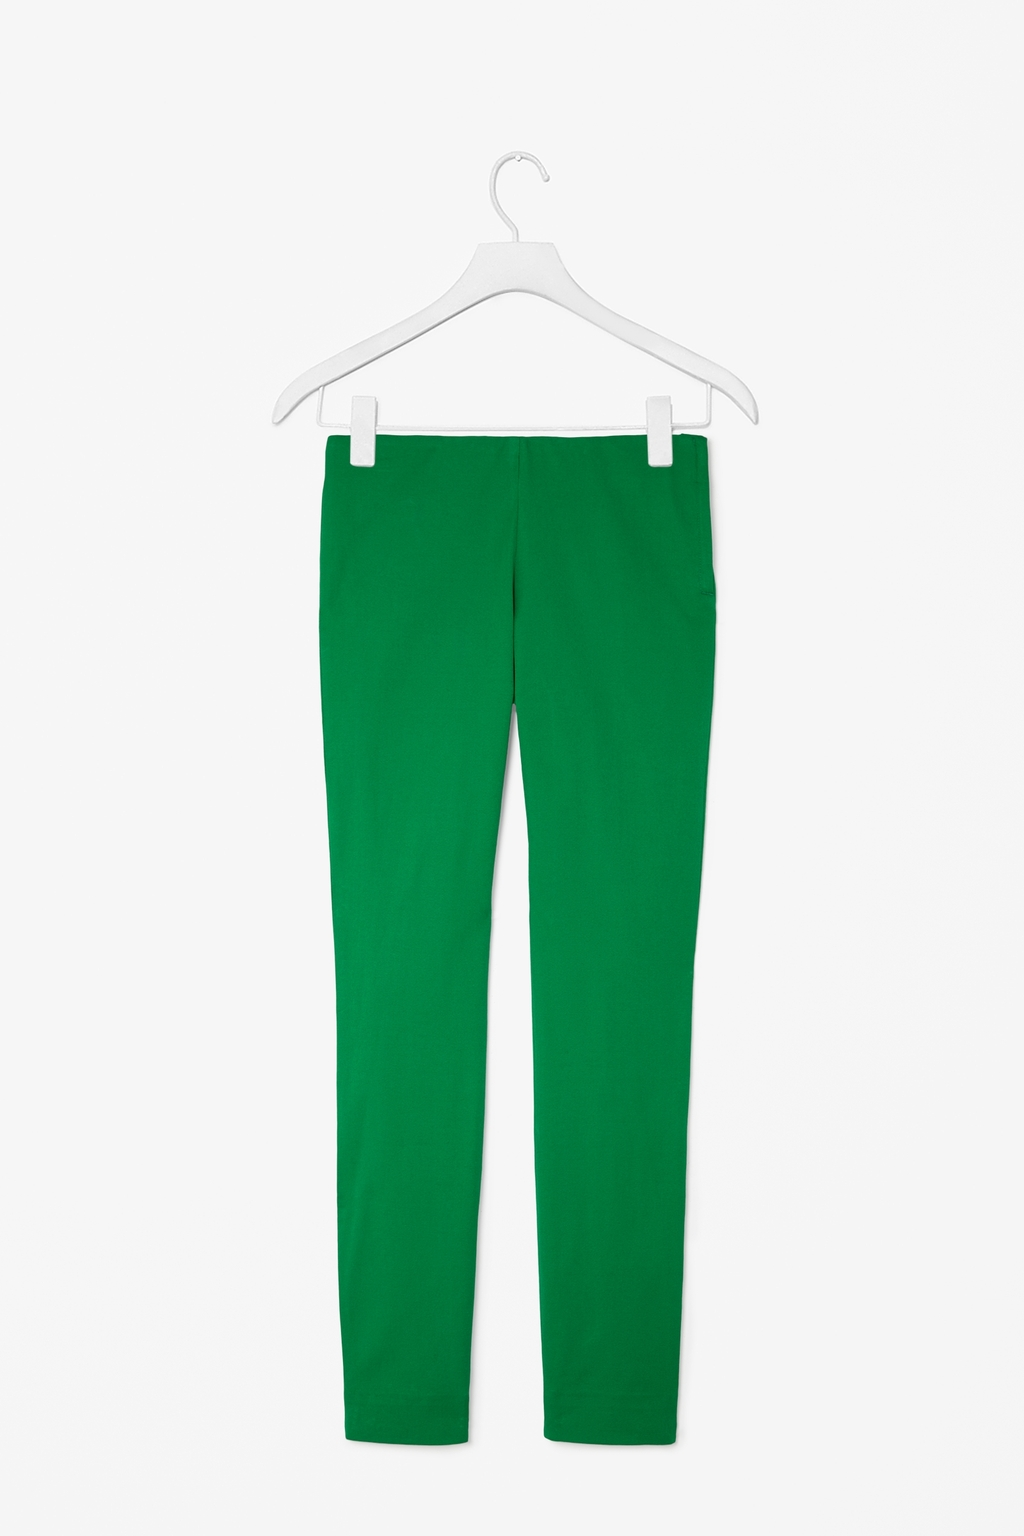 Slim Side Zip Trousers - pattern: plain; waist: mid/regular rise; predominant colour: emerald green; occasions: casual, evening, creative work; length: ankle length; fibres: cotton - stretch; fit: slim leg; pattern type: fabric; texture group: other - light to midweight; style: standard; season: s/s 2014